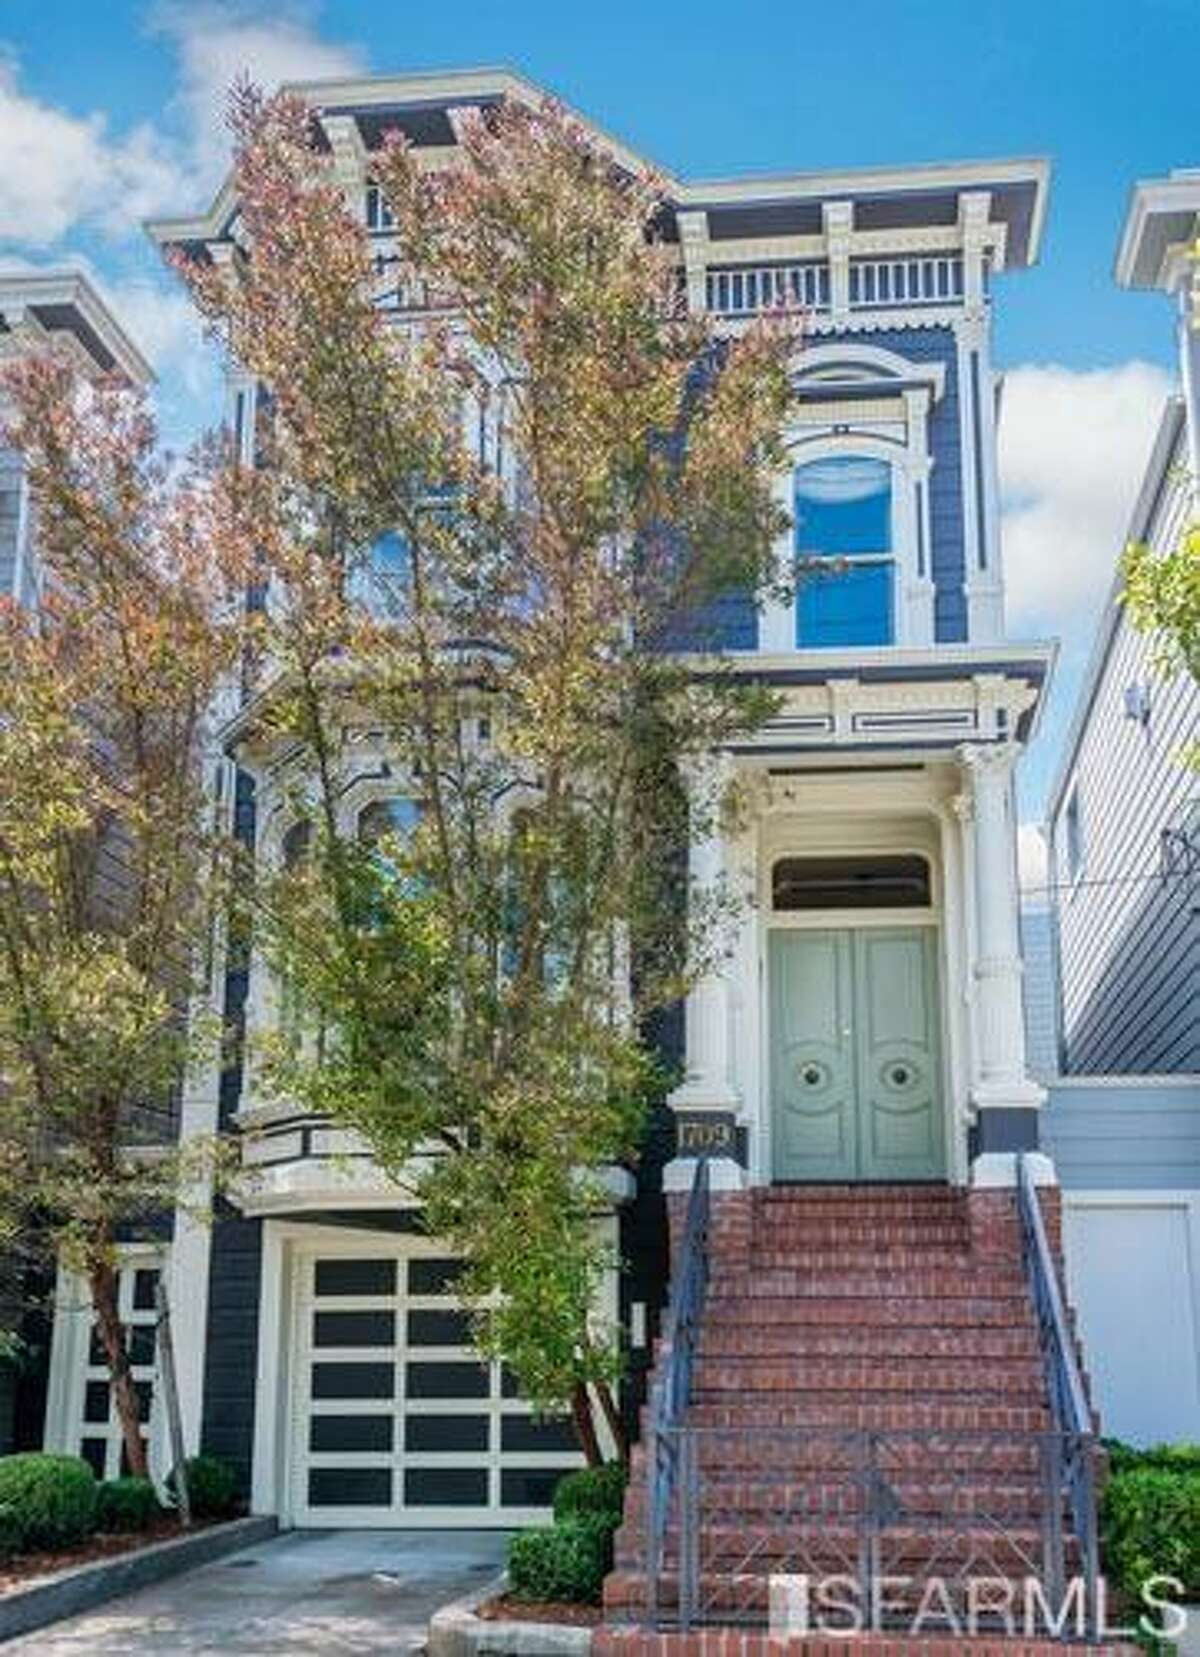 Click through the gallery to see what the house looked like when it hit the market in 2016: An 1883 San Francisco Victorian is on the market for $4.15 million.